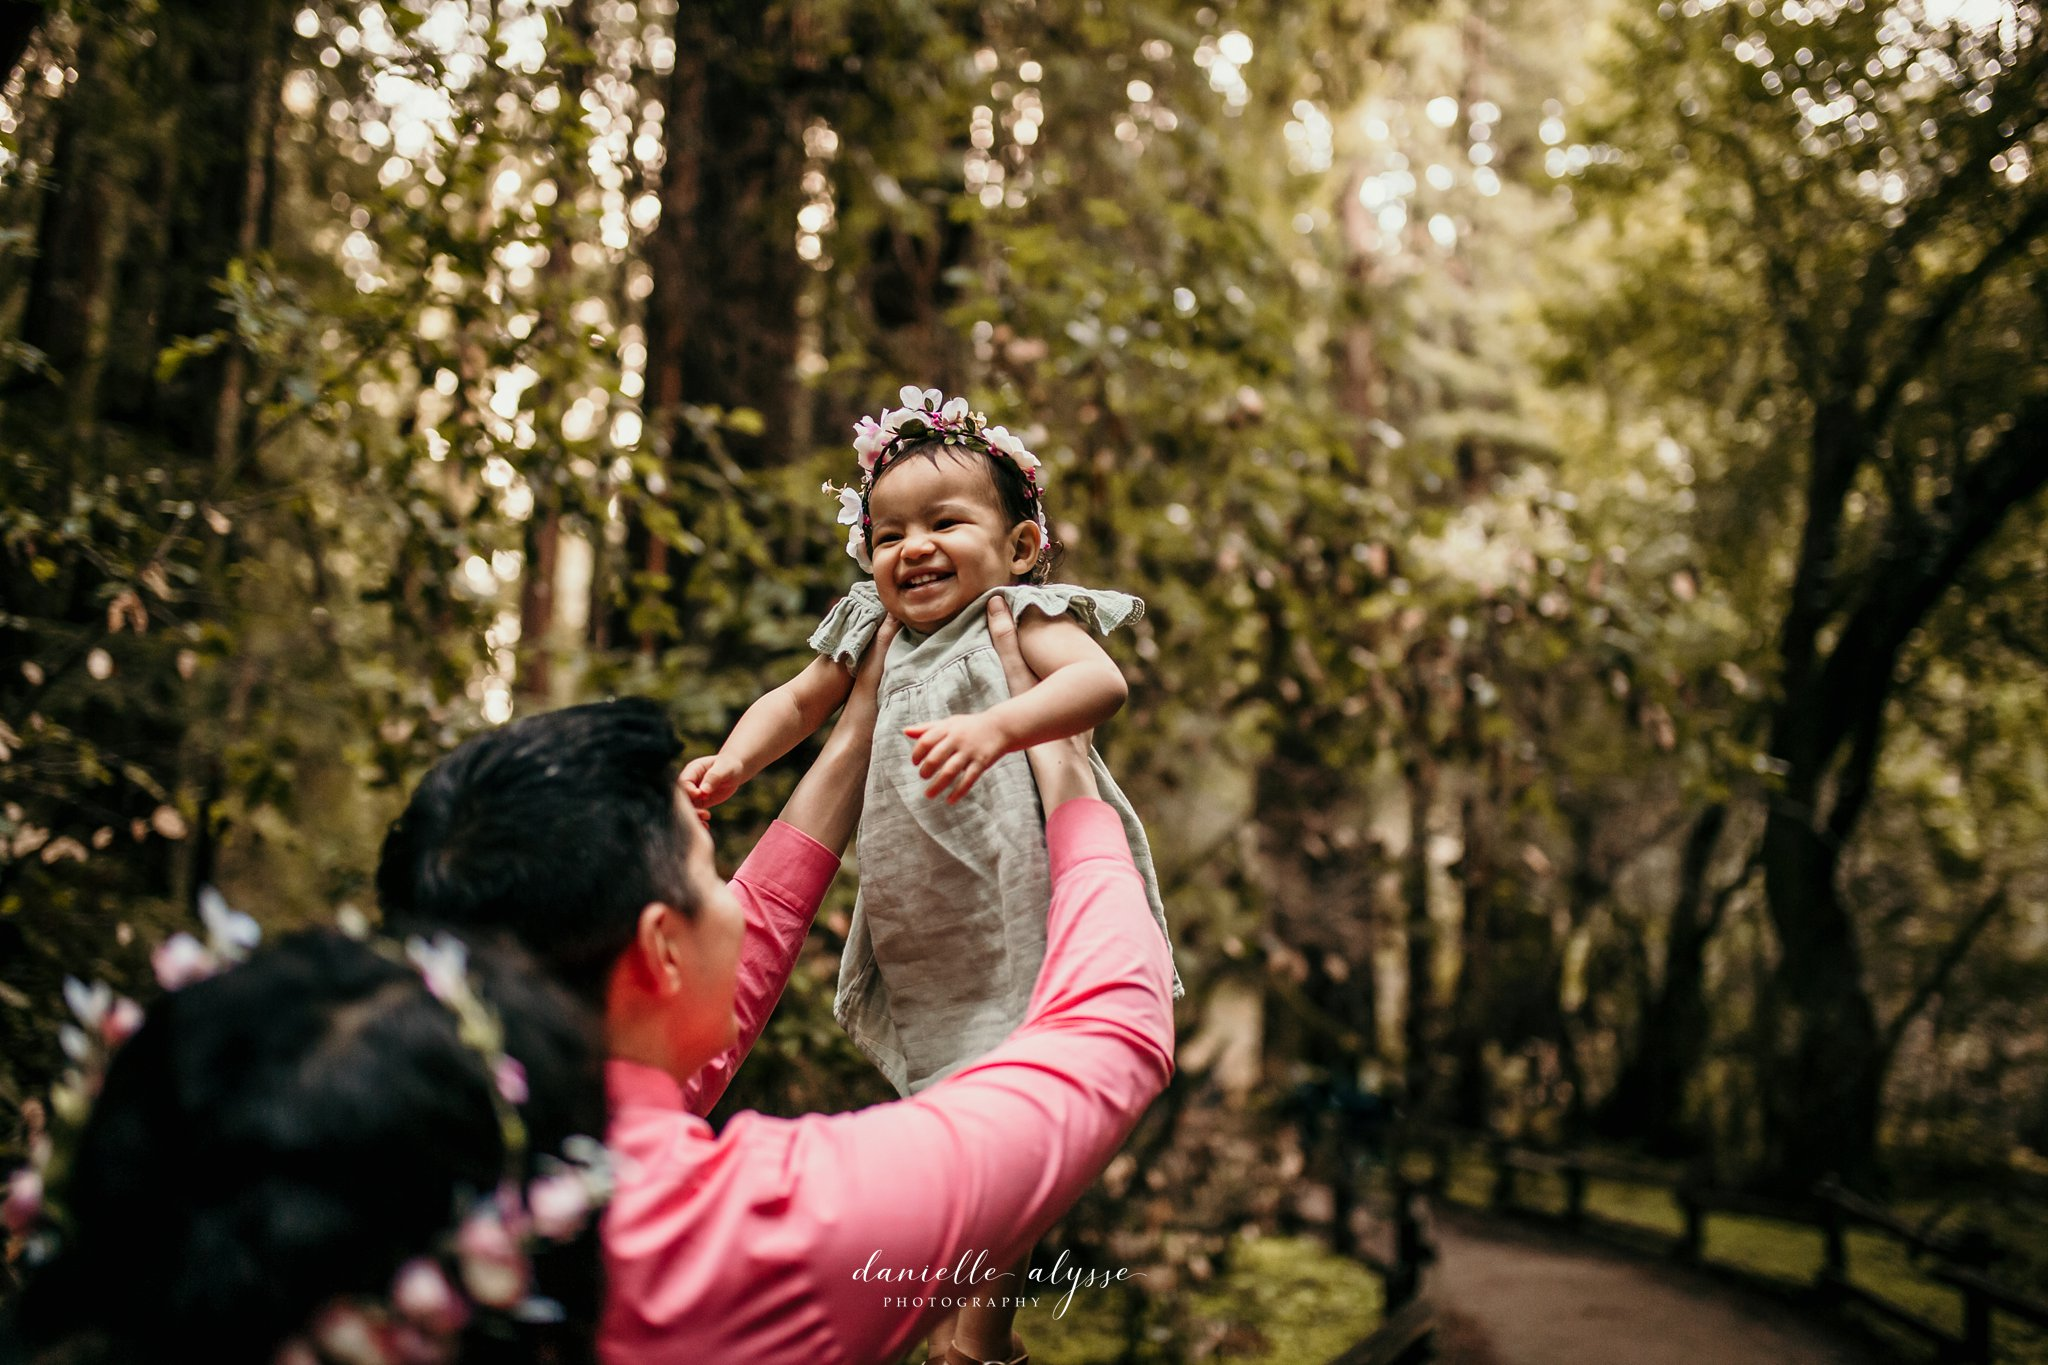 190216_maternity_india_family_muir_woods_bay_danielle_alysse_photography_18_WEB.jpg